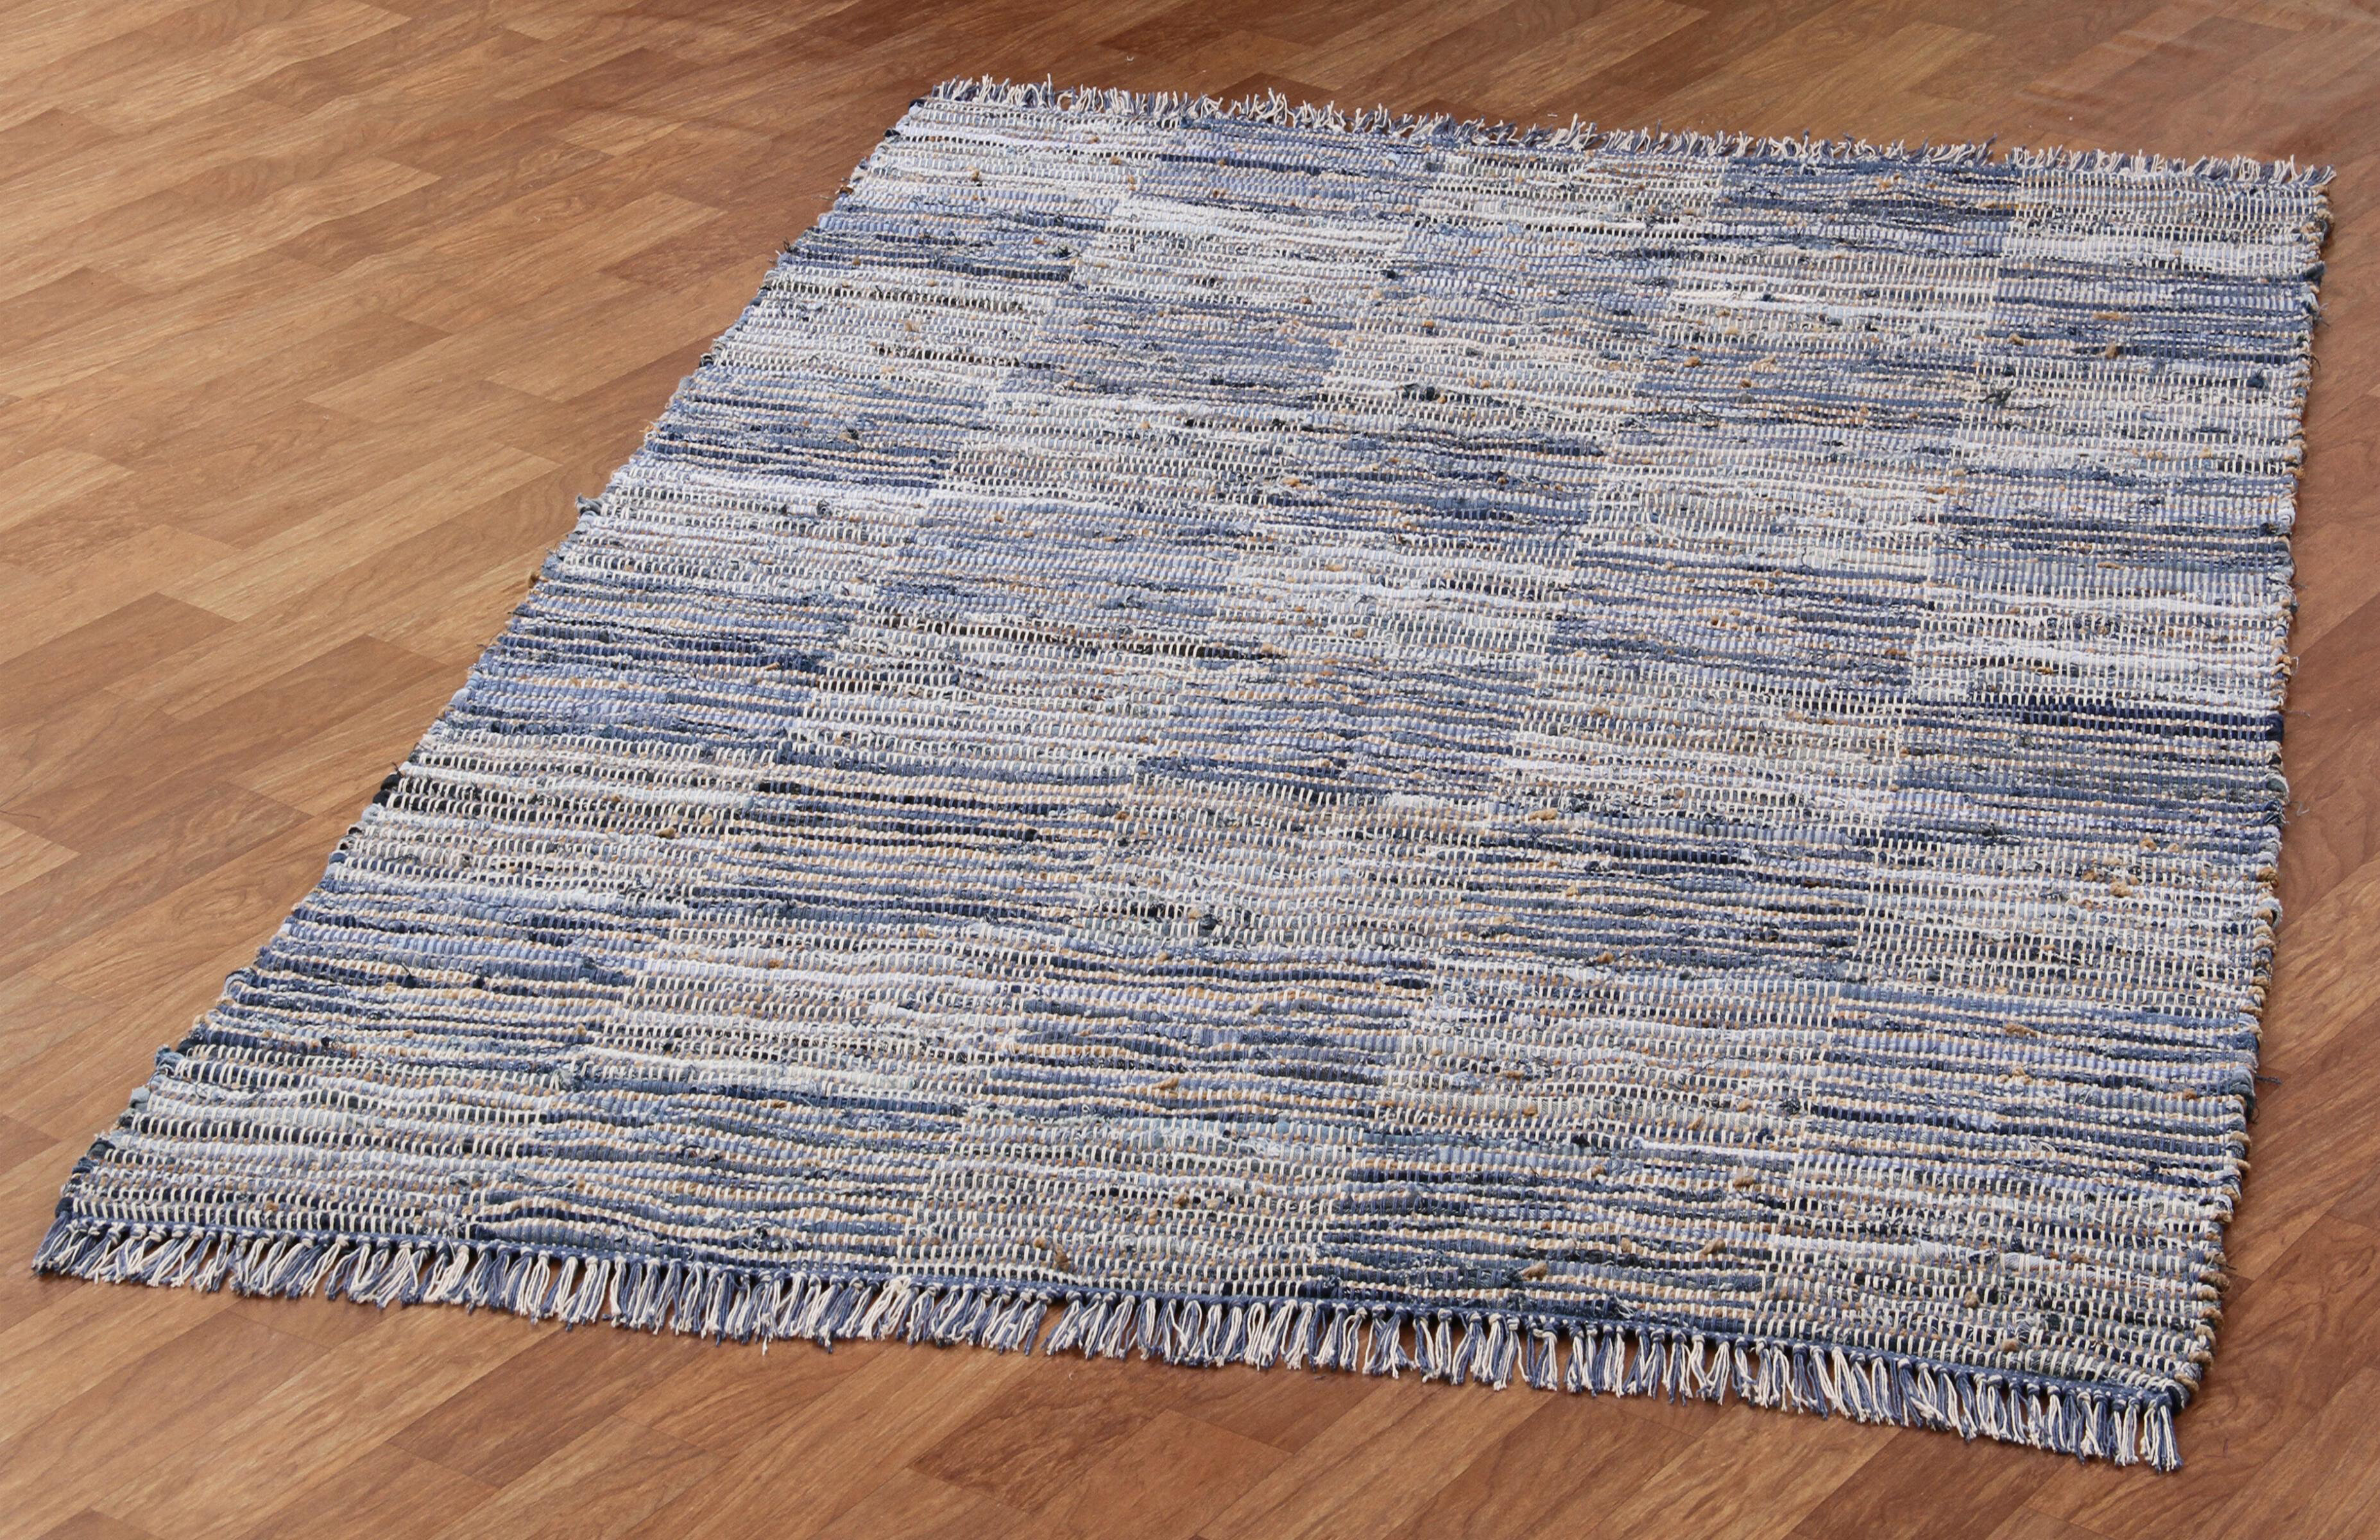 Laurel Foundry Modern Farmhouse Synthia Handwoven Cotton Blue Natural Hemp Rug Reviews Wayfair